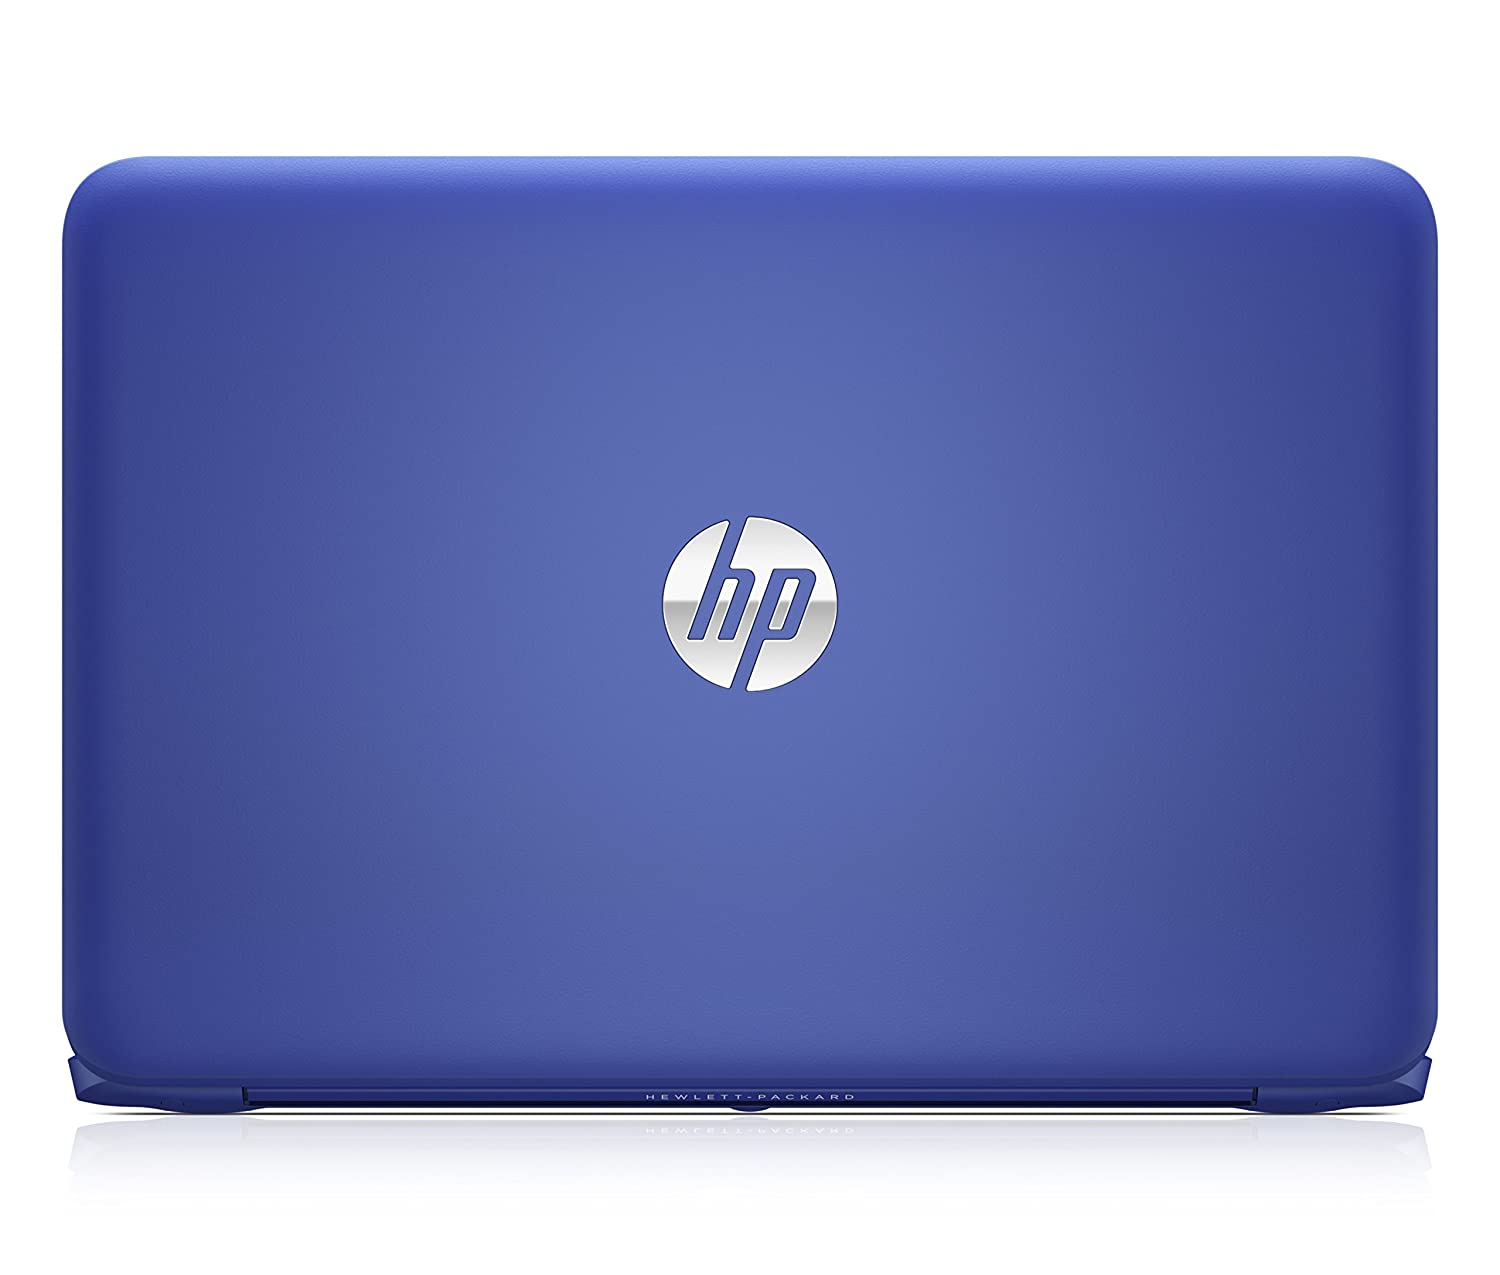 HP-Stream-13-Laptop-with-Free-Office-365-Personal-for-One-Year-4G-Version-